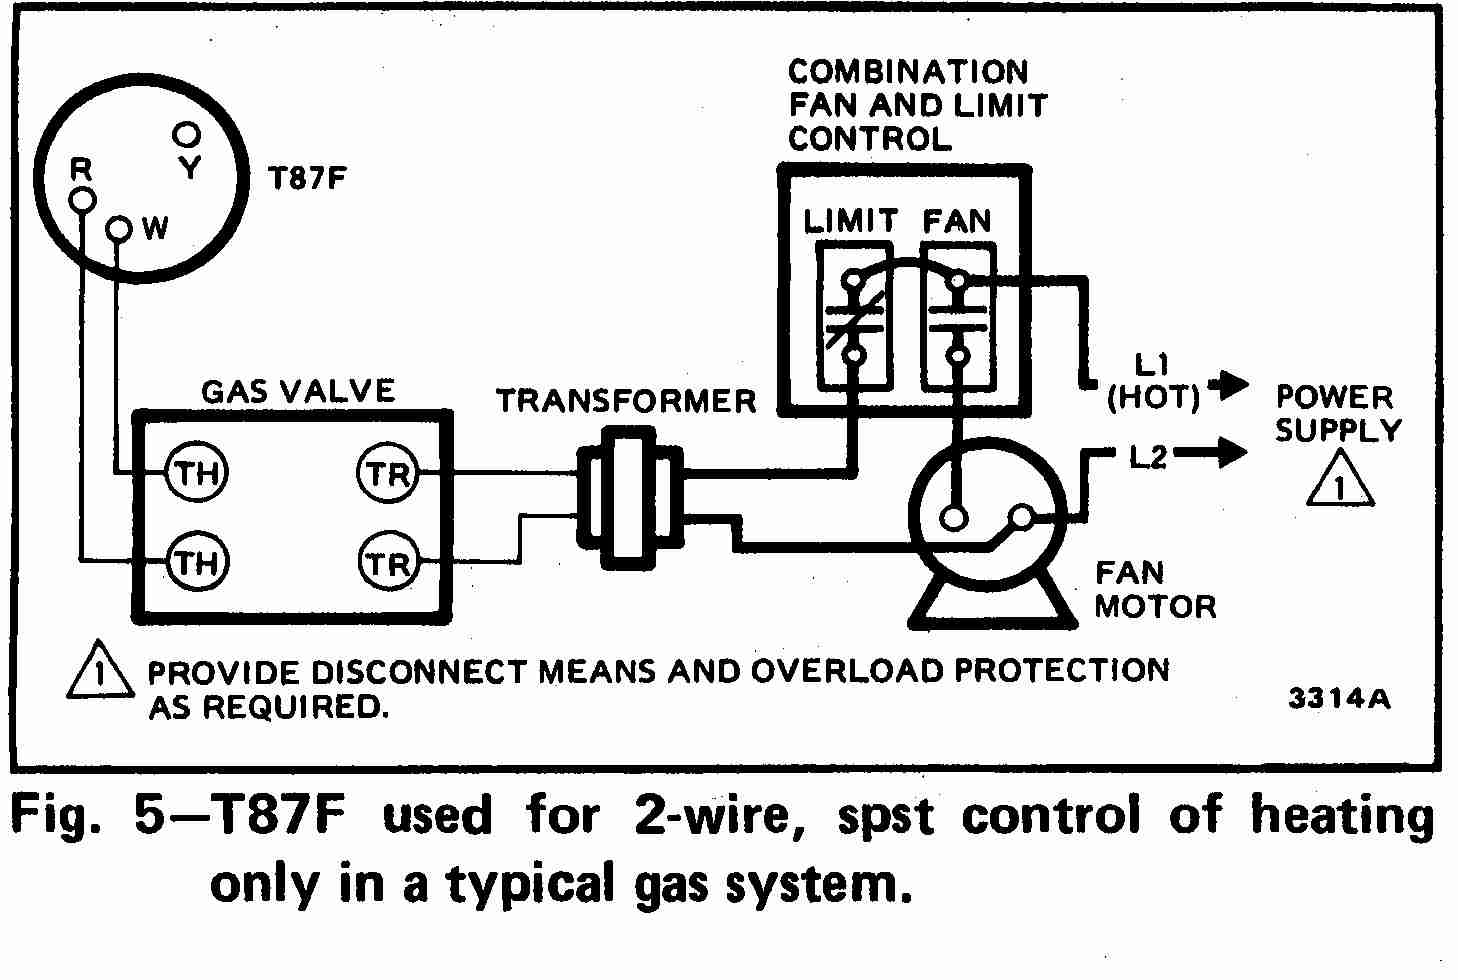 TT_T87F_0002_2Wg_DJF room thermostat wiring diagrams for hvac systems honeywell aquastat wiring diagram at suagrazia.org